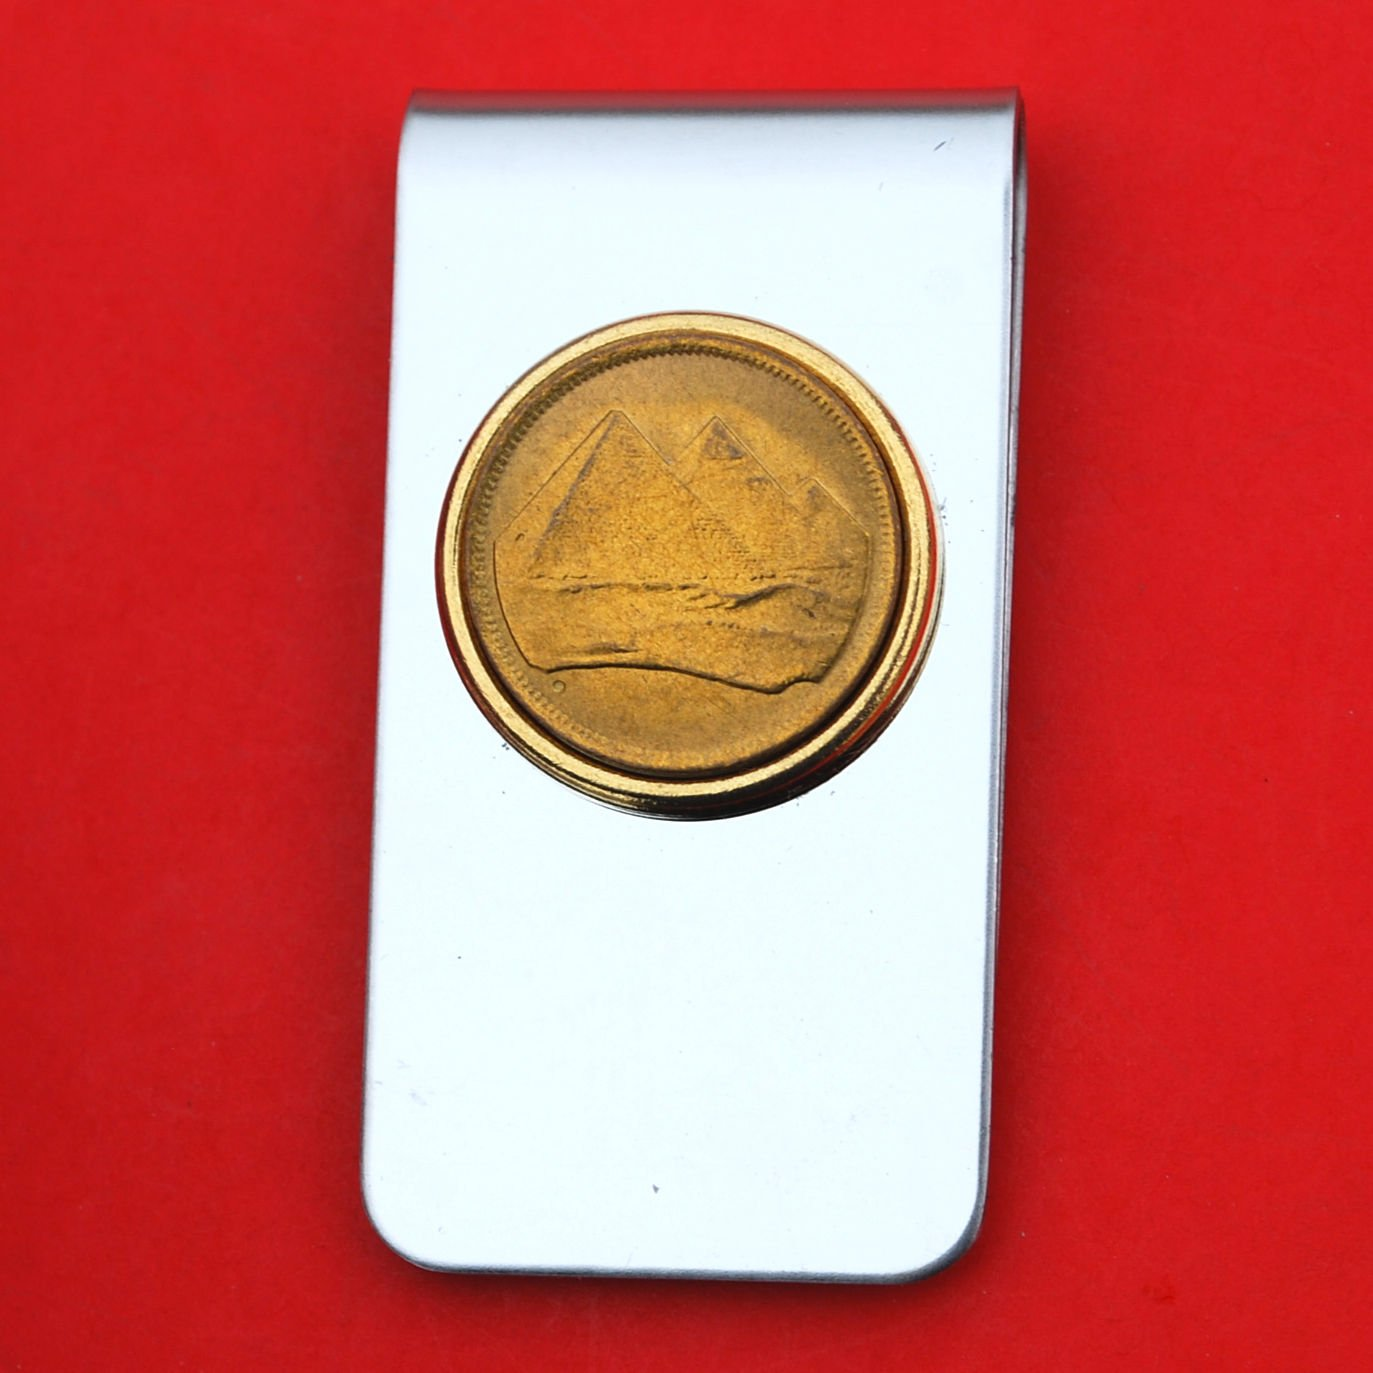 Egypt 1984 1 Piastre Gold Pyramids Gem BU Uncirculated Coin Stainless Steel Silver Money Clip New